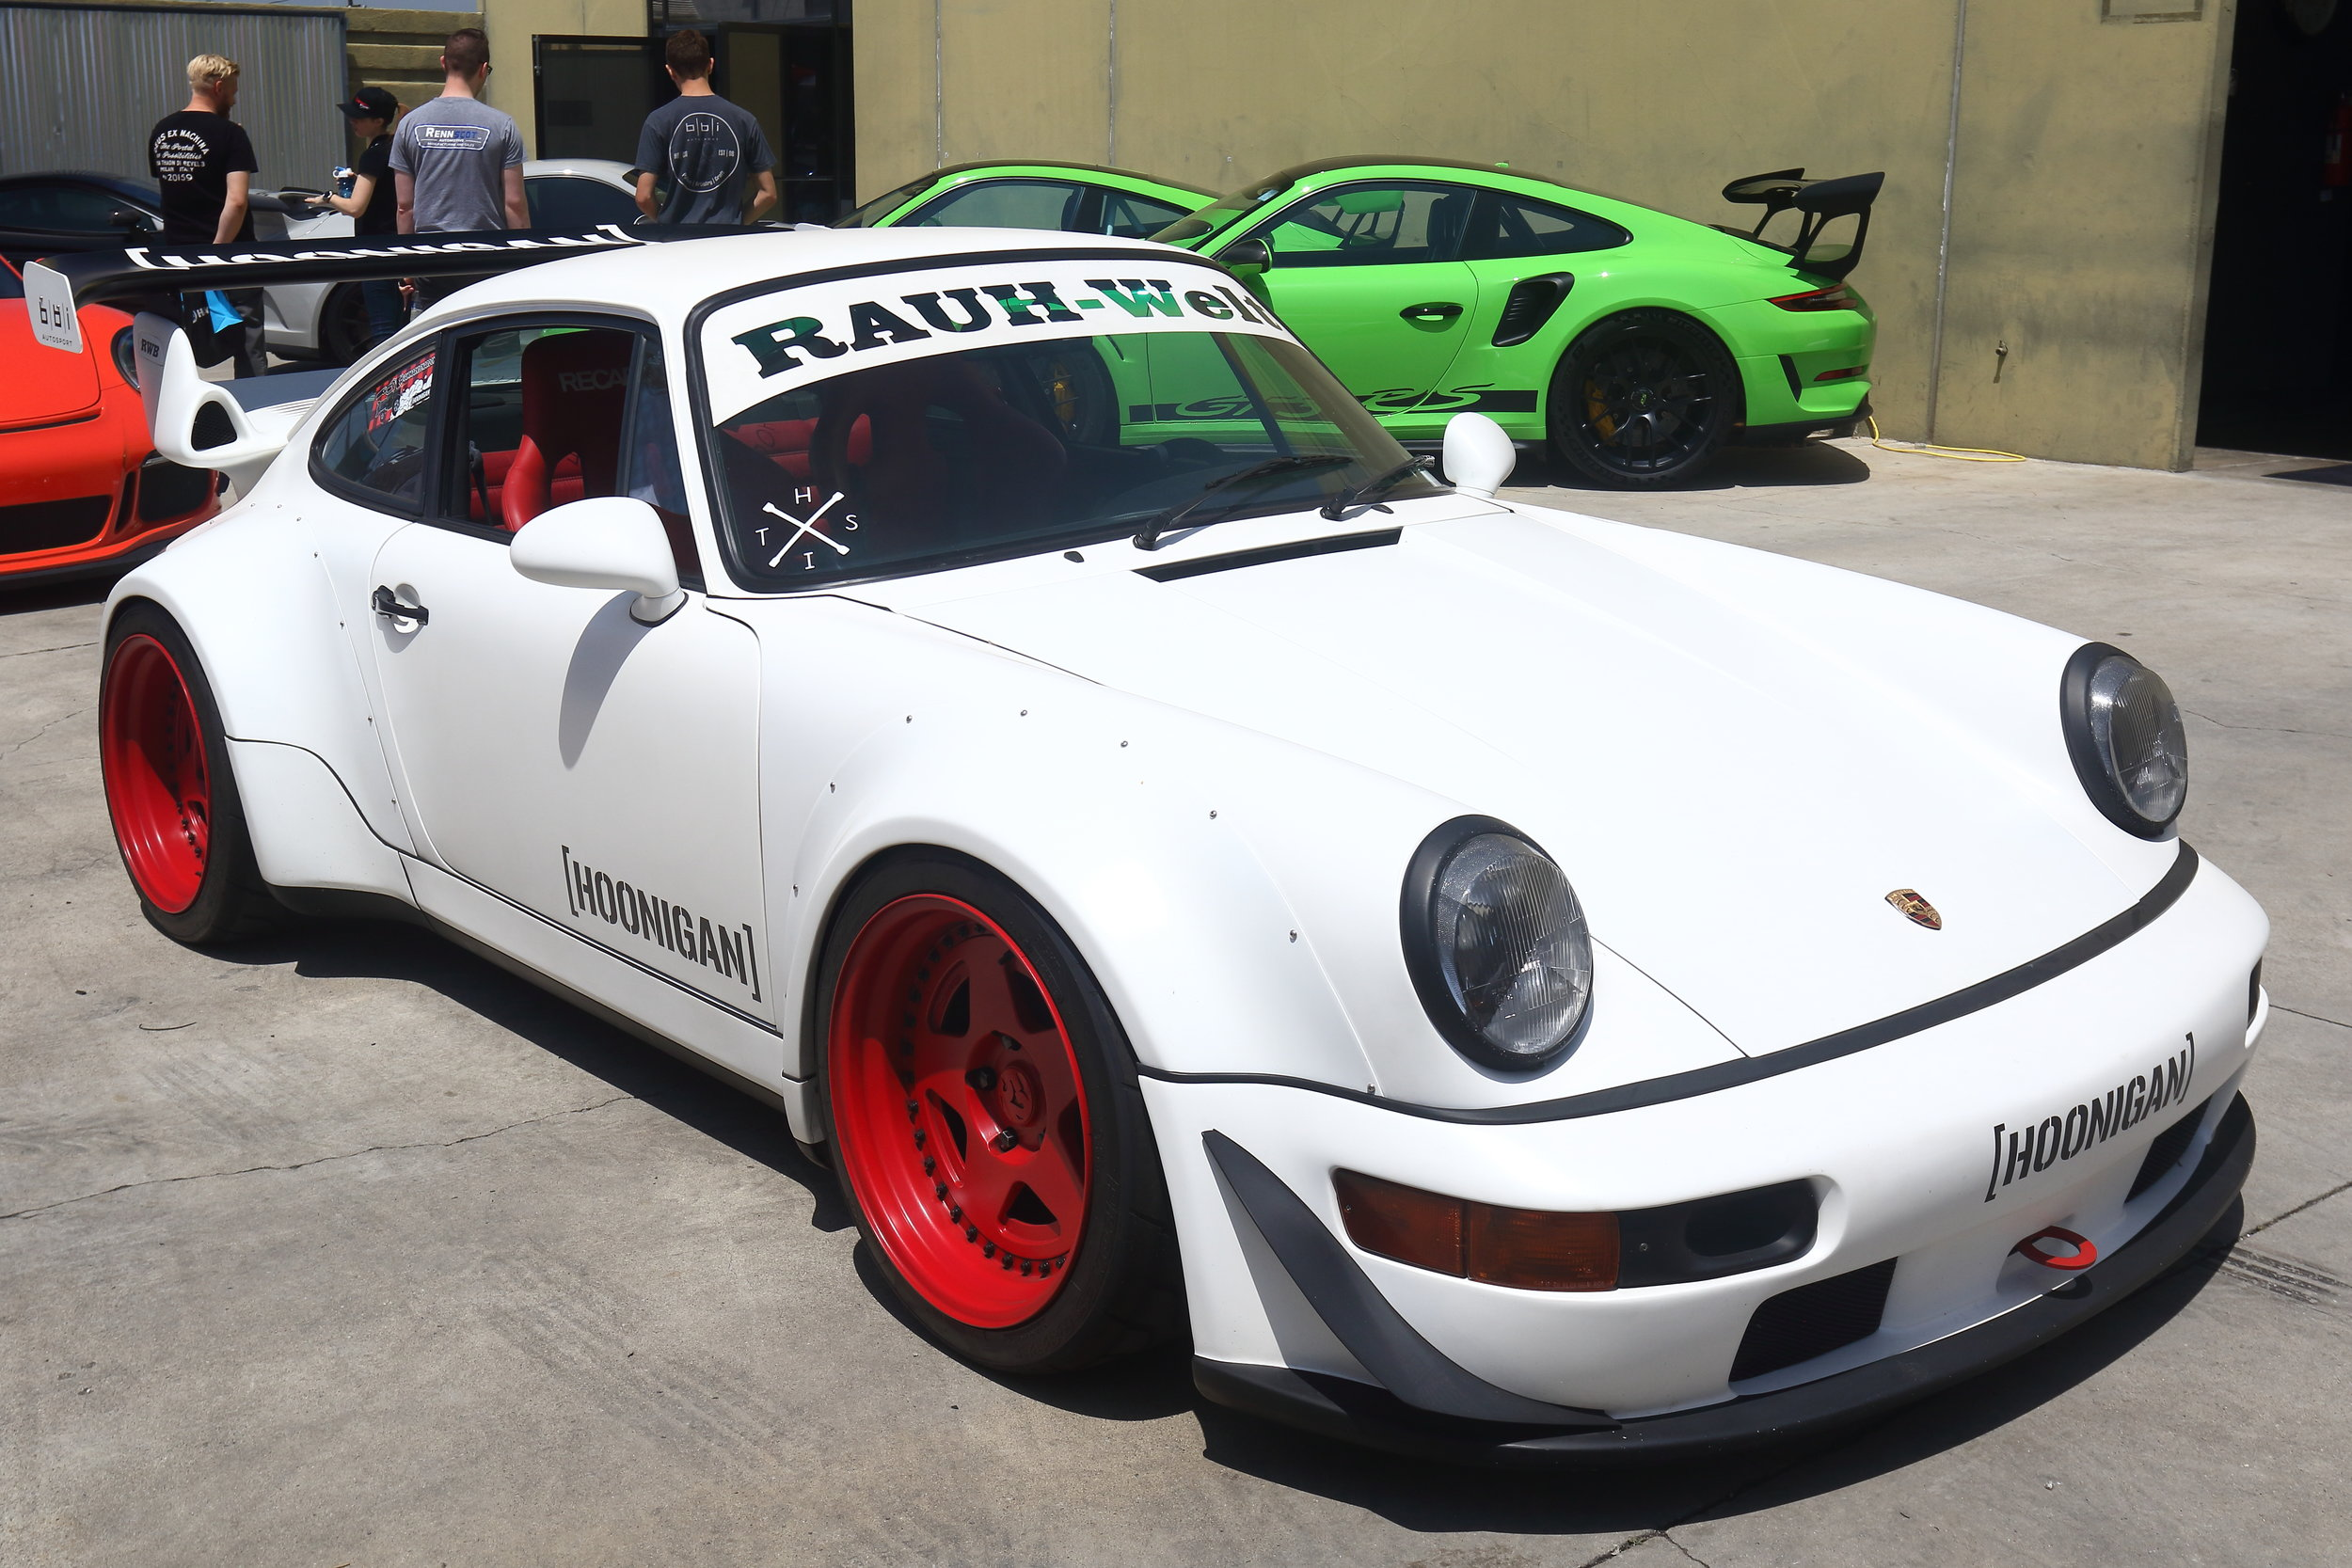 Hoonigan Brian Scotto's RWB Porsche 930 Turbo